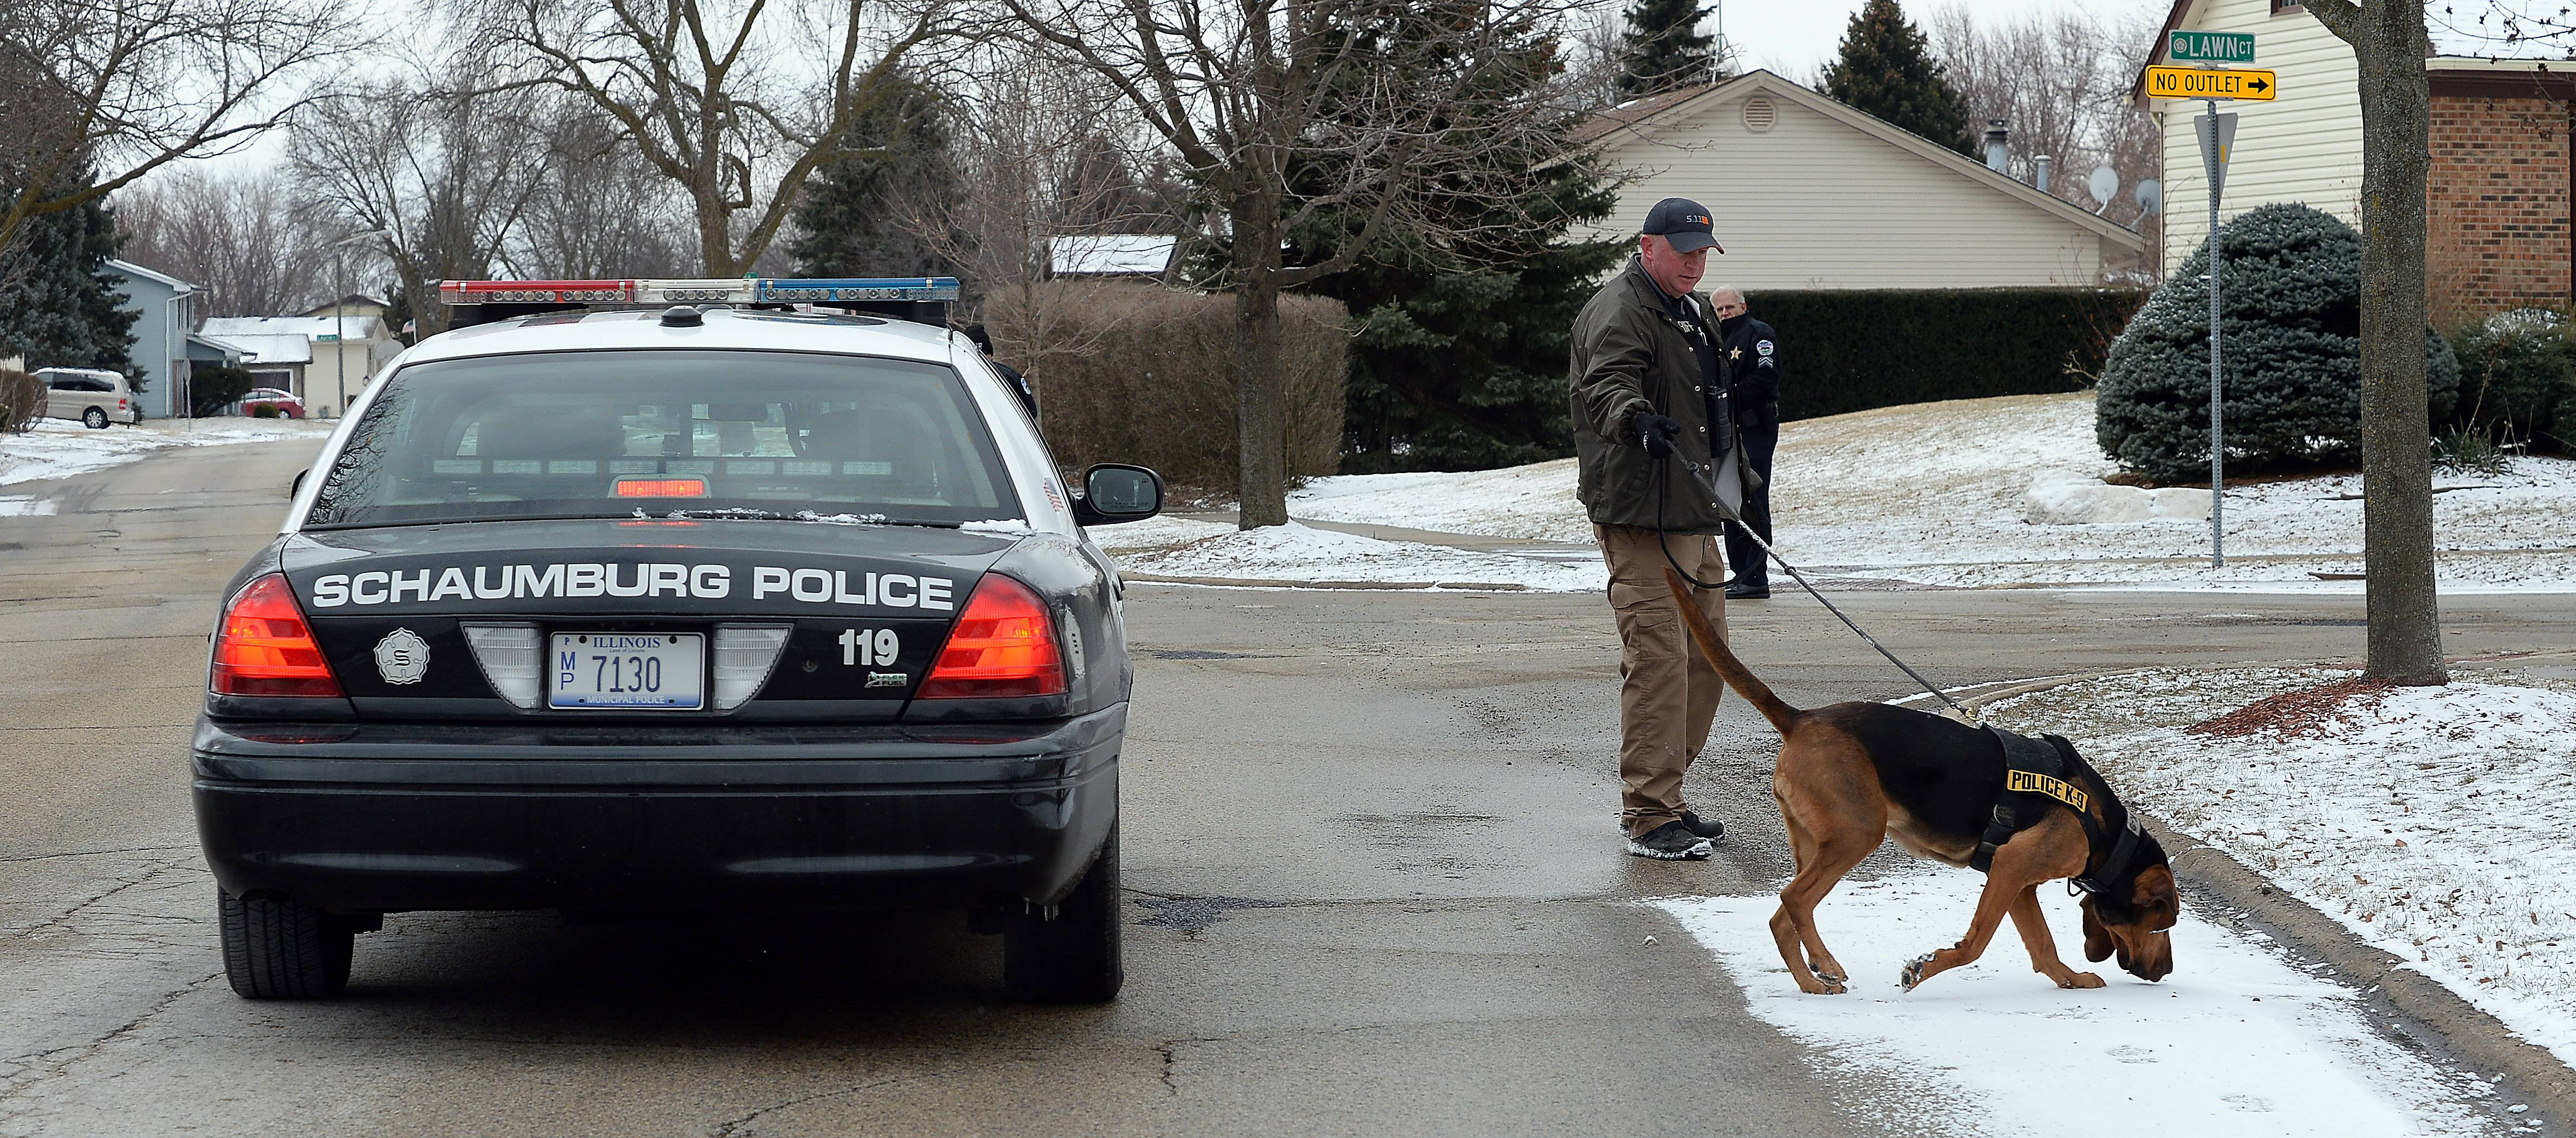 Schaumburg police and a Cook County Sheriff's K-9 unit search form suspects Tuesday morning after a home invasion in the 300 block of Pembroke Lane. A two-hour manhunt failed to locate a pair of suspects, who are now believed to be out of the area.